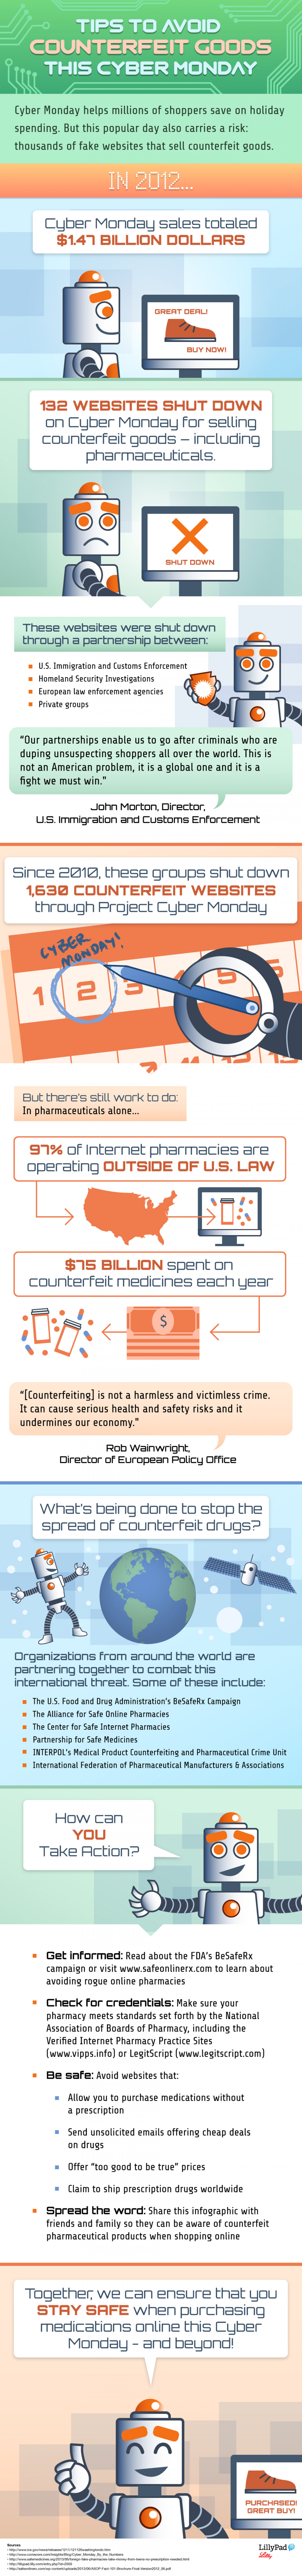 Tips To Avoid Counterfeit Goods This Cyber Monday Infographic